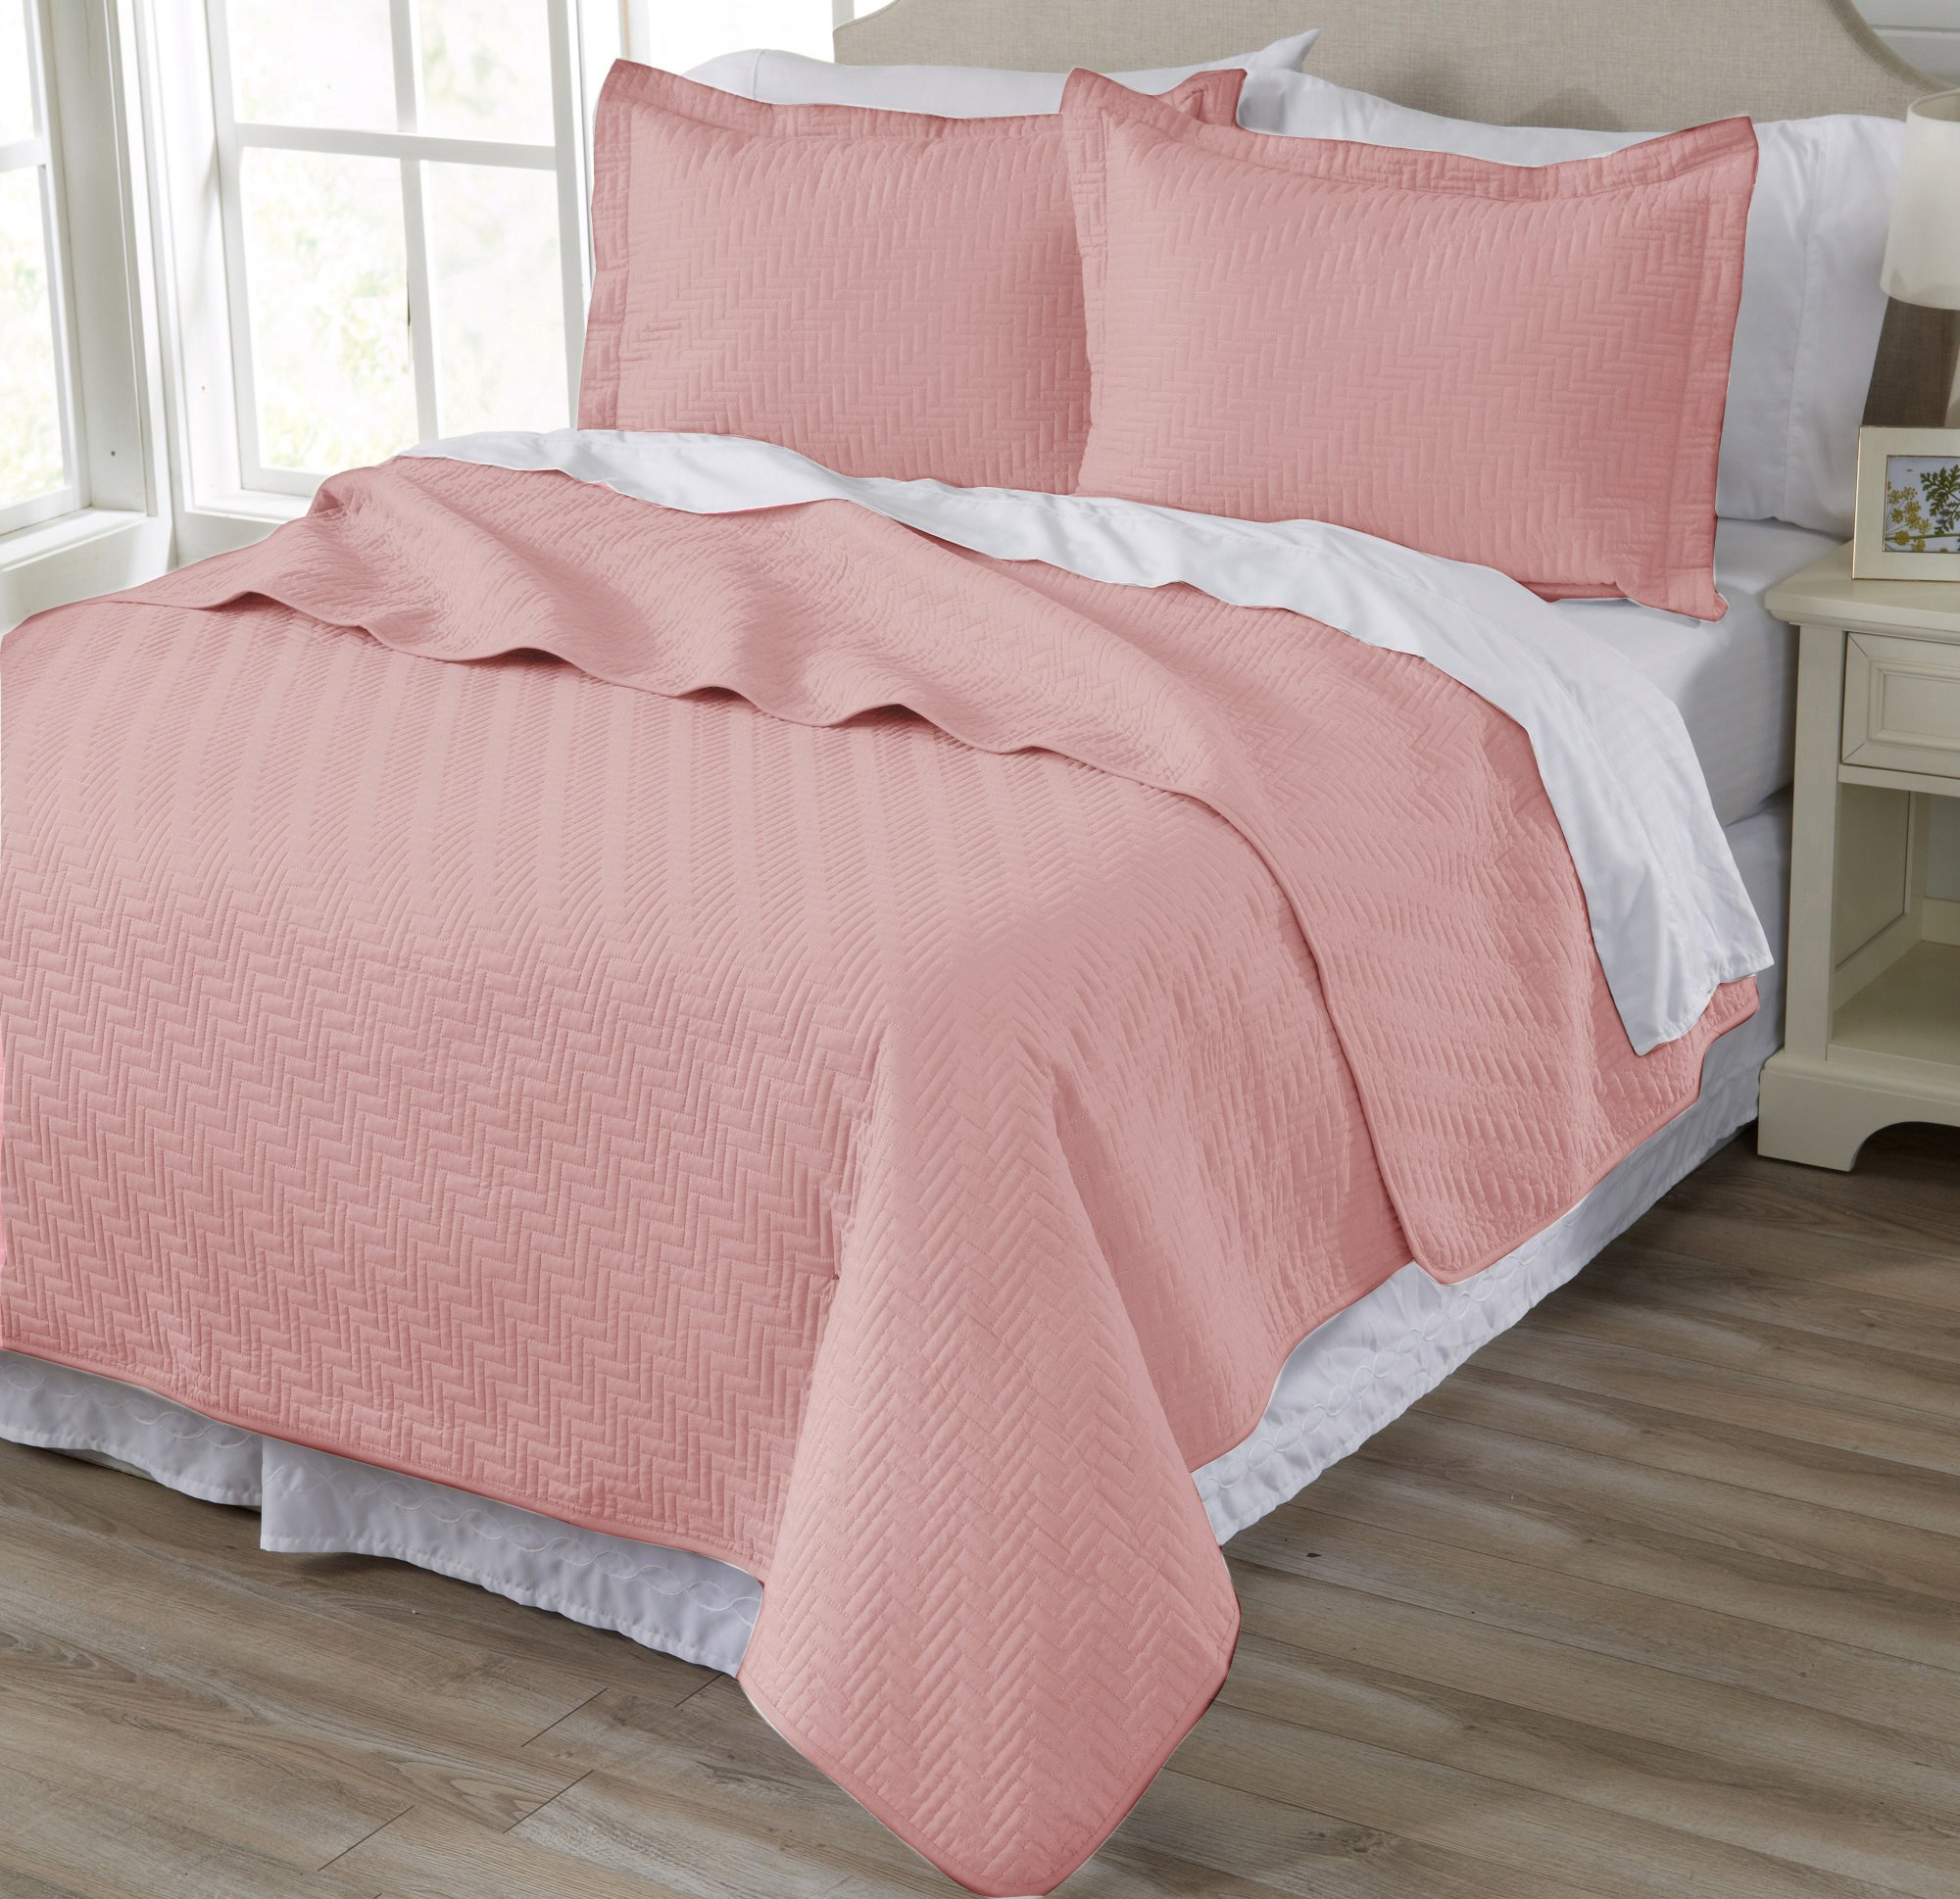 Home Fashion Designs 3-Piece Luxury Quilt Set with Shams. Soft All-Season Microfiber Bedspread and Coverlet in Solid Colors. Emerson Collection Brand. (Full/Queen, Silver Pink)